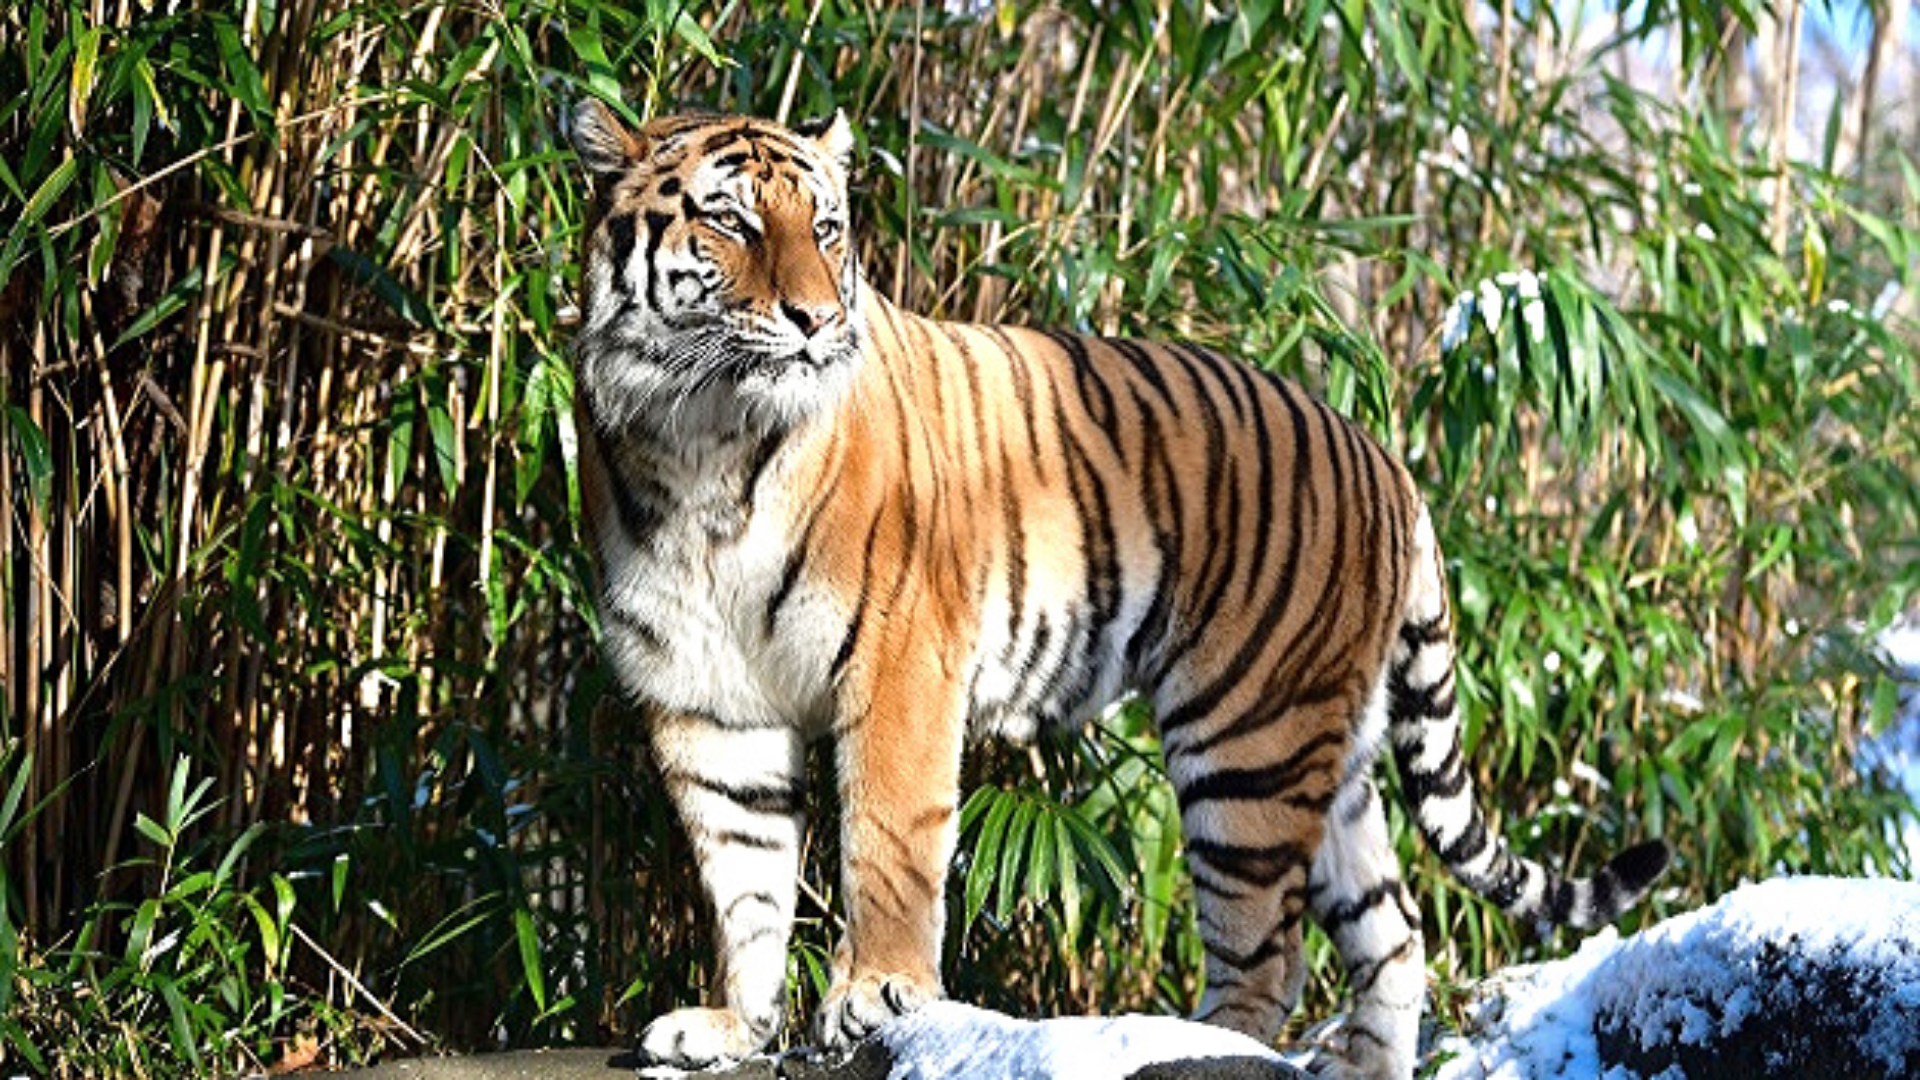 Can Humans Infect Animals with COVID-19? A Tiger at the Bronx Zoo Tested Positive!  